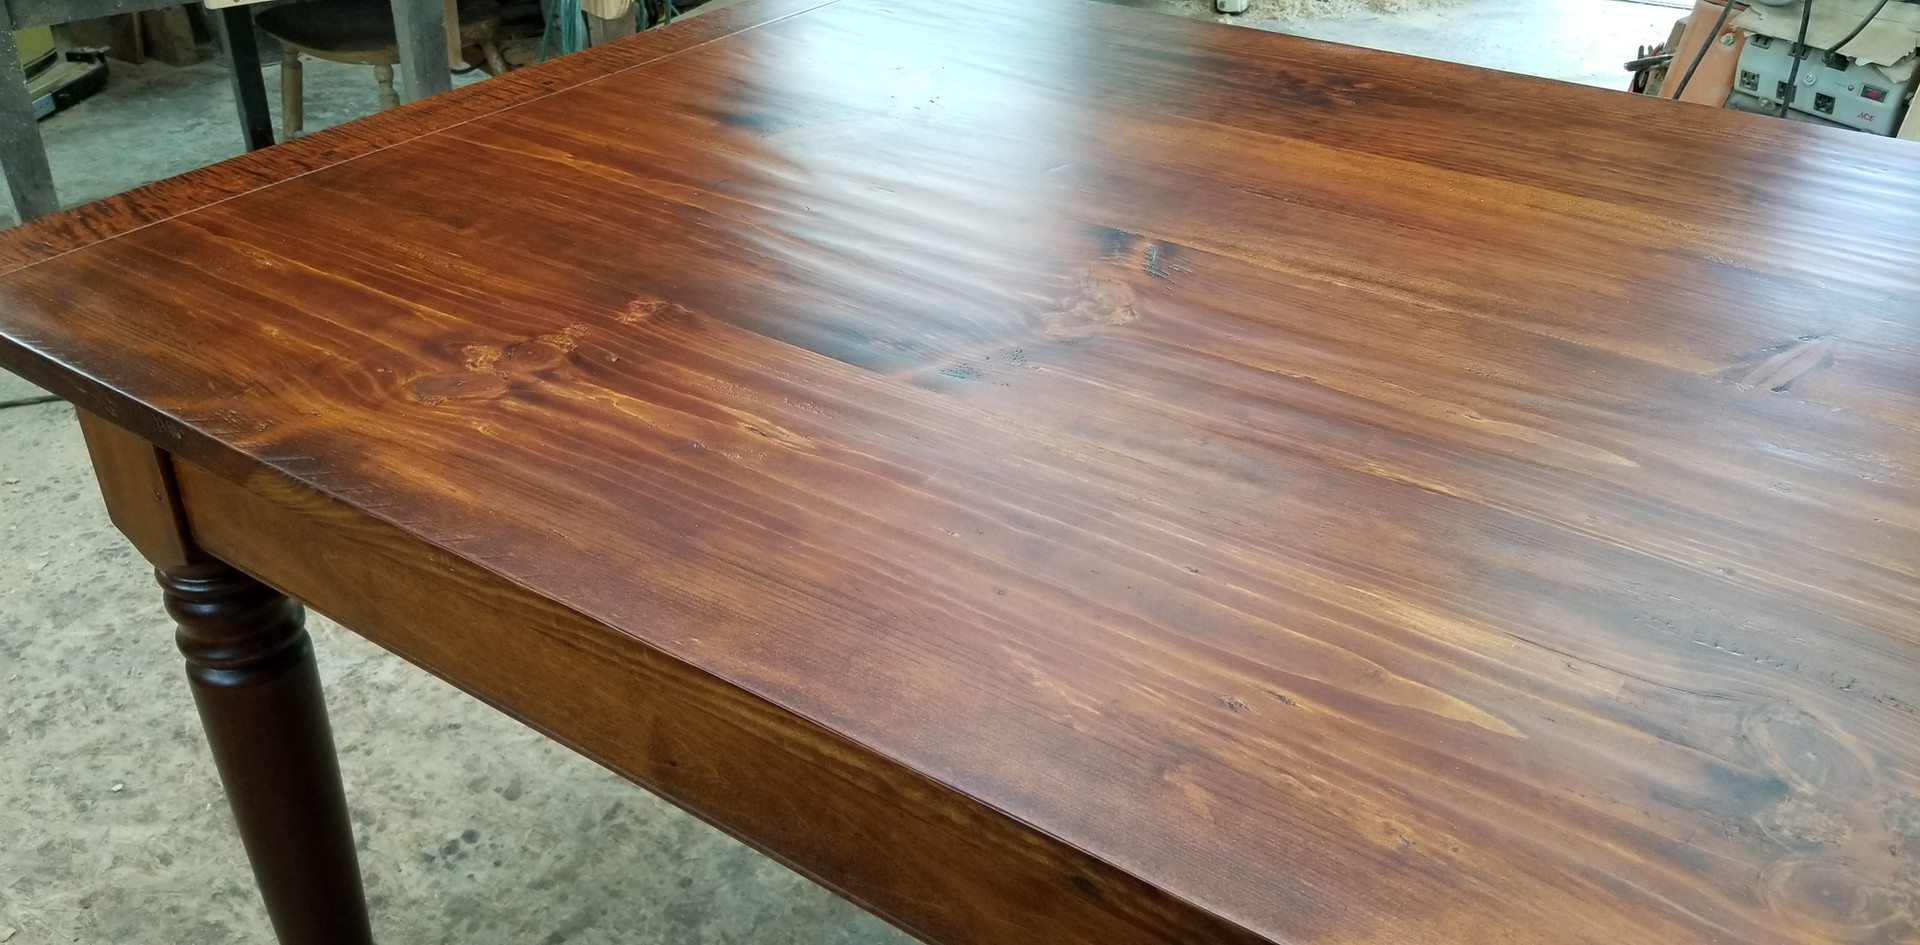 Hand planed table top in Red Pine